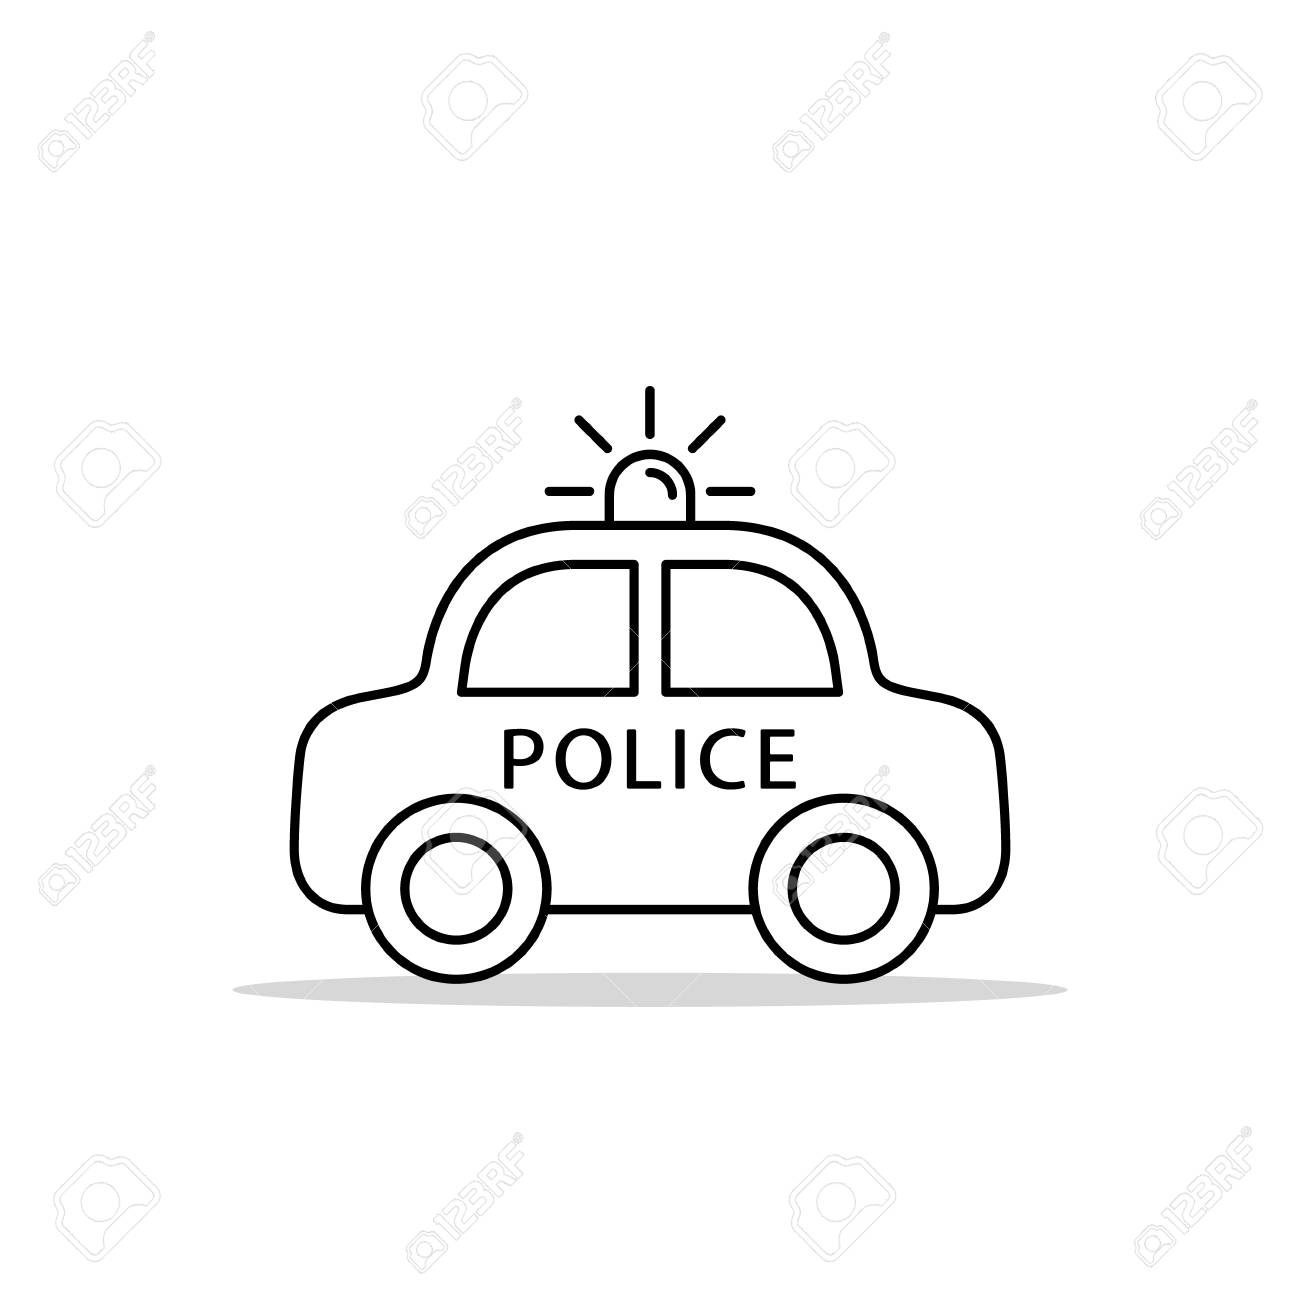 Police car line icon vector iolated flat design outline illustration